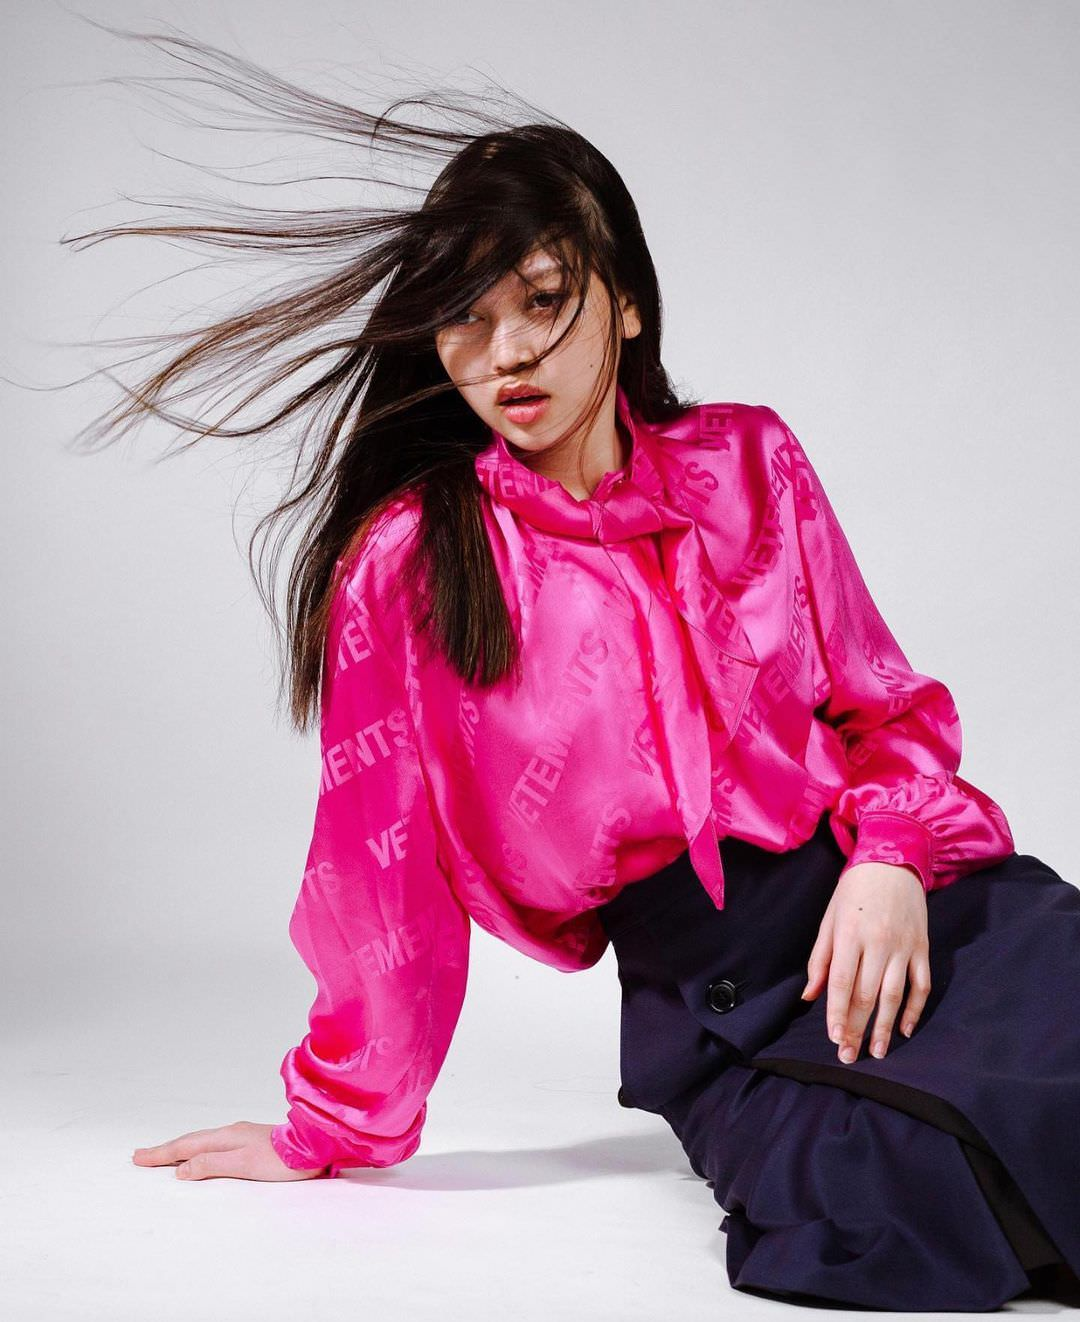 SUMMER 2021 HOT PINK MONOGRAM BLOUSE & MORE - DISCOVER THE SELECTION